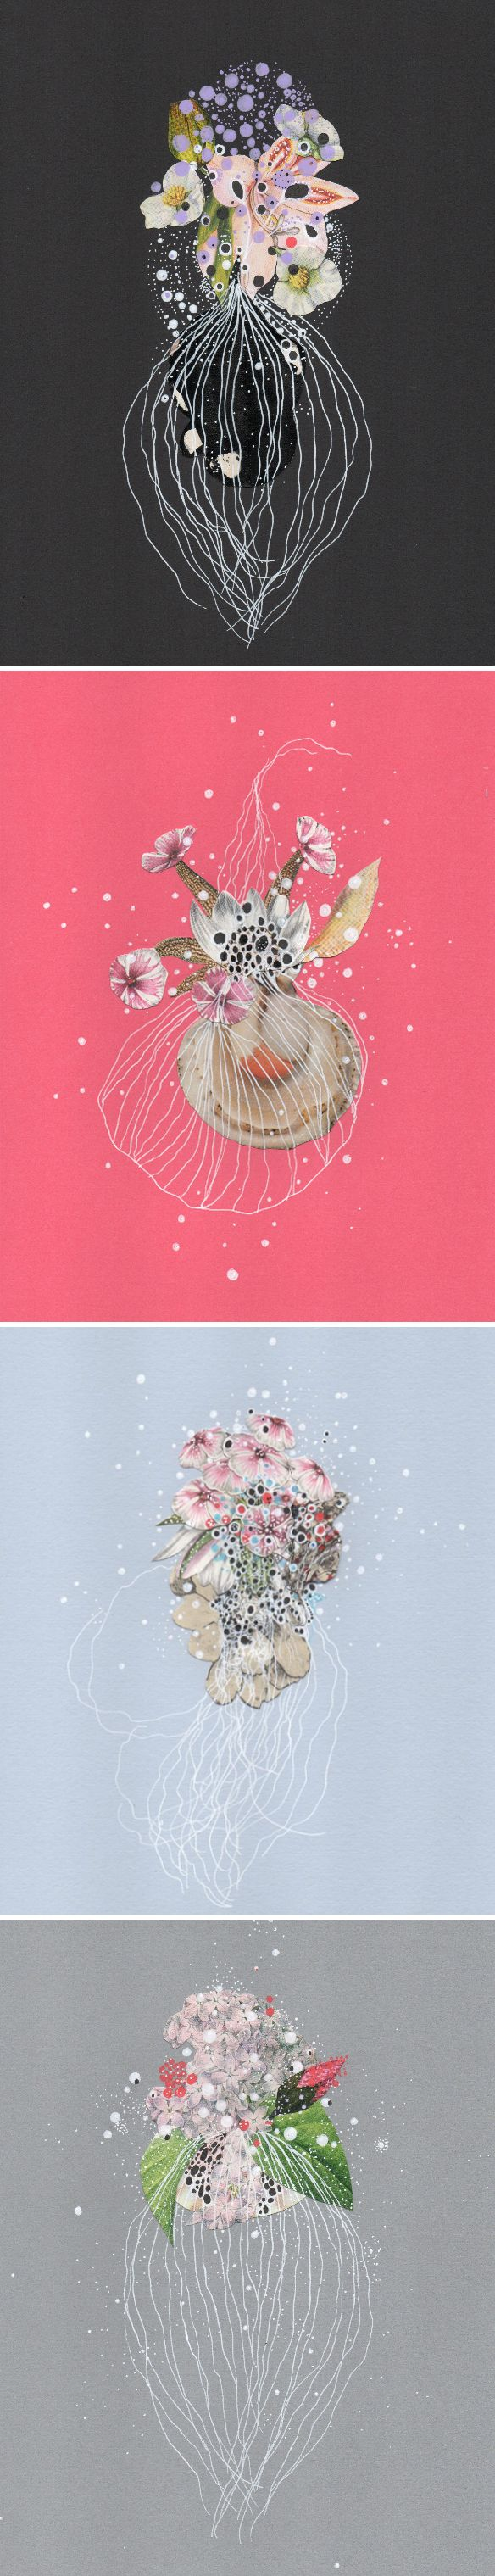 mixed media collages by jenny brown